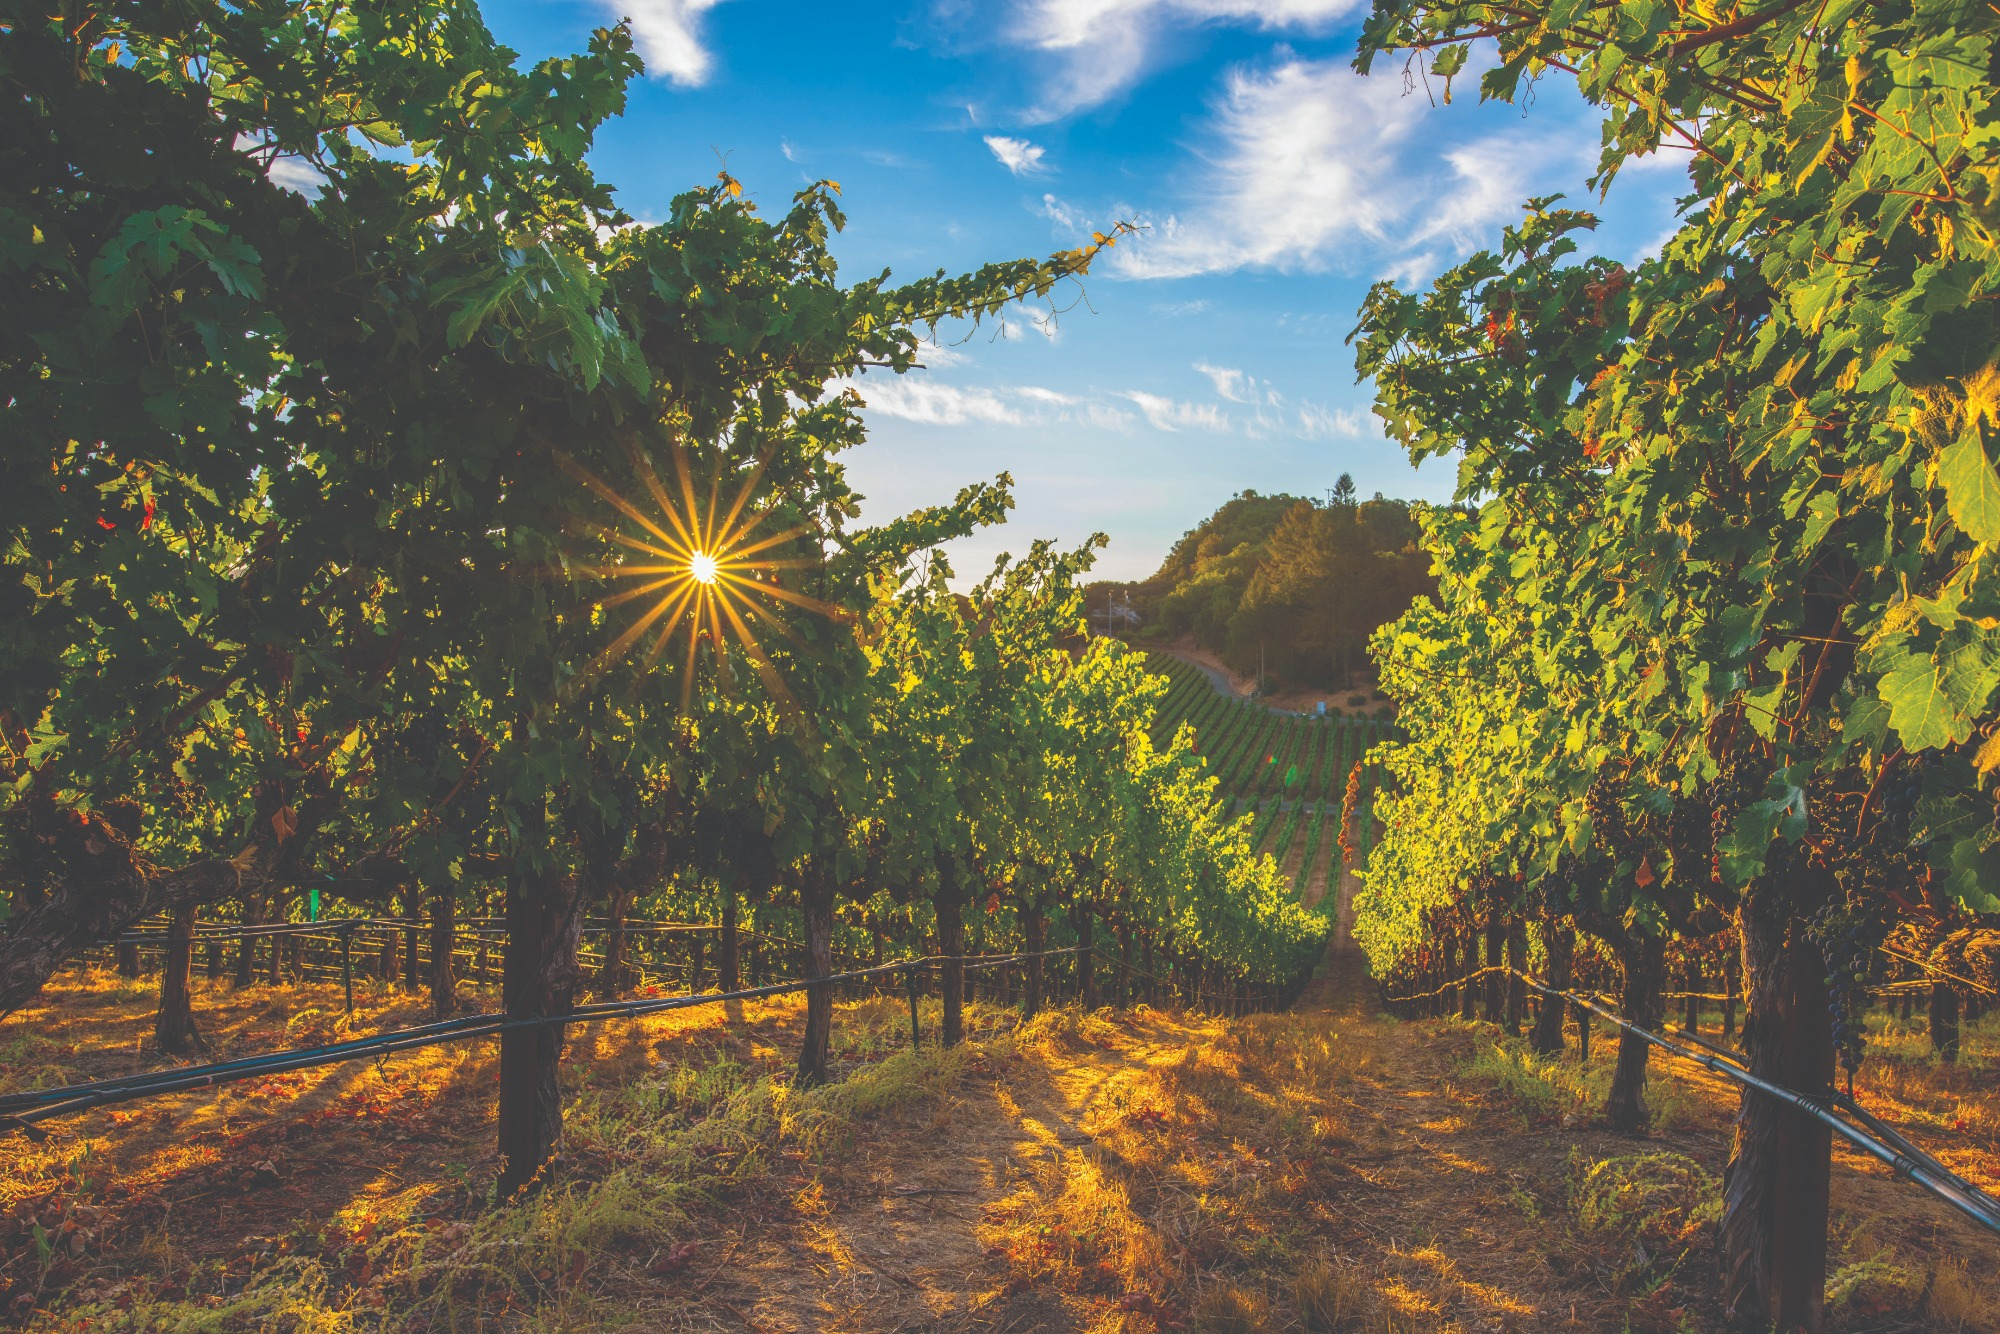 sunset in a lush green vineyard